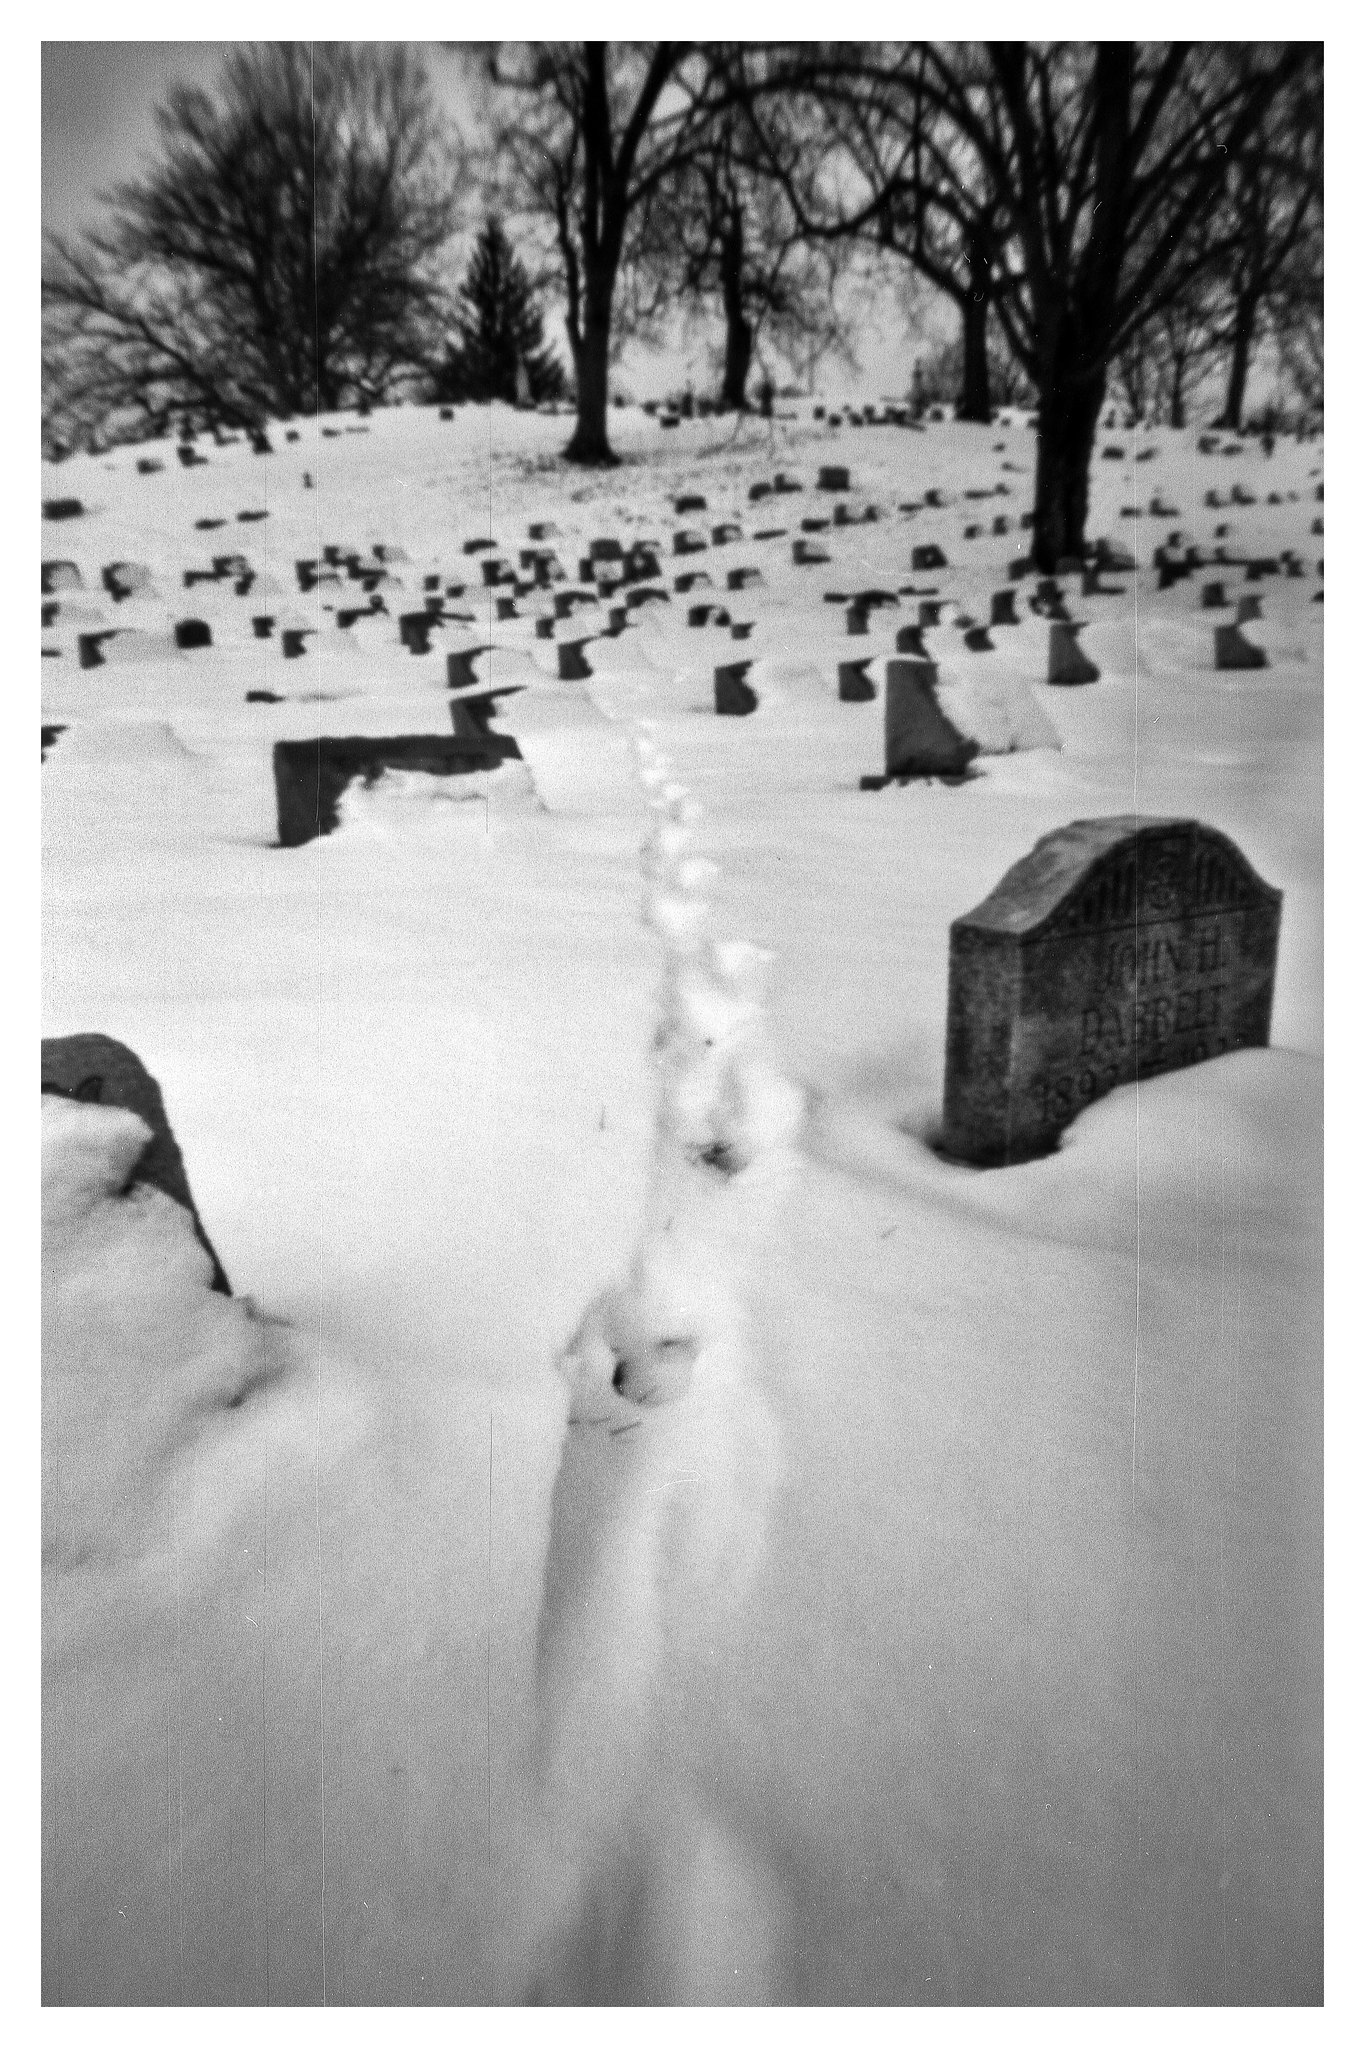 Calvaray Cemetery - NOON 612 Pinhole Camera on Fuji ACROS 100 film